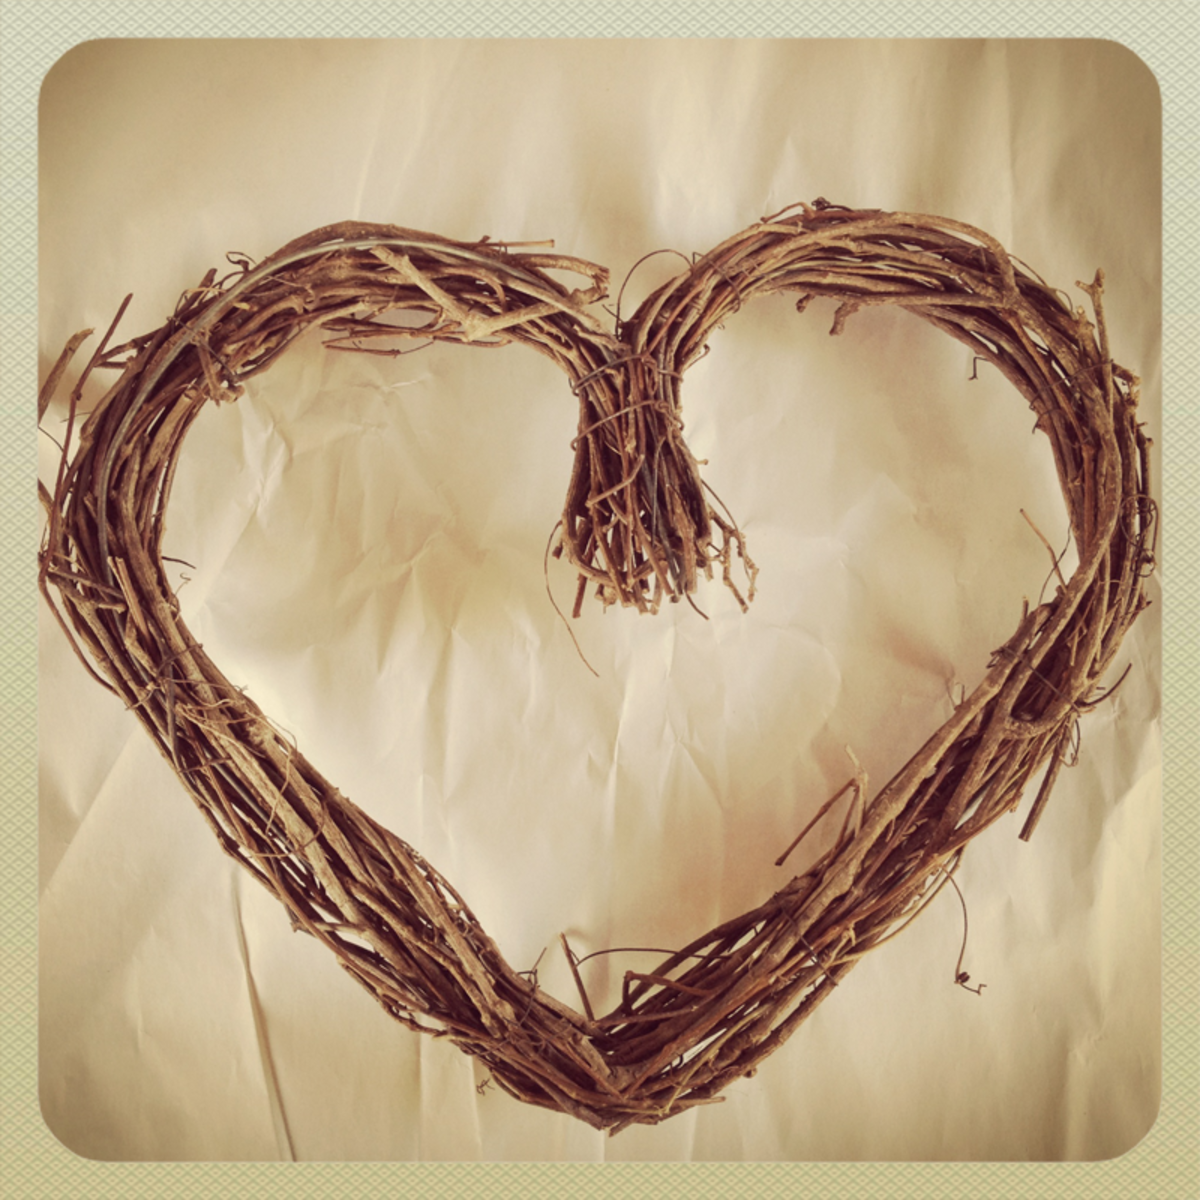 Heart-shaped grapevine wreath from Michael's craft store